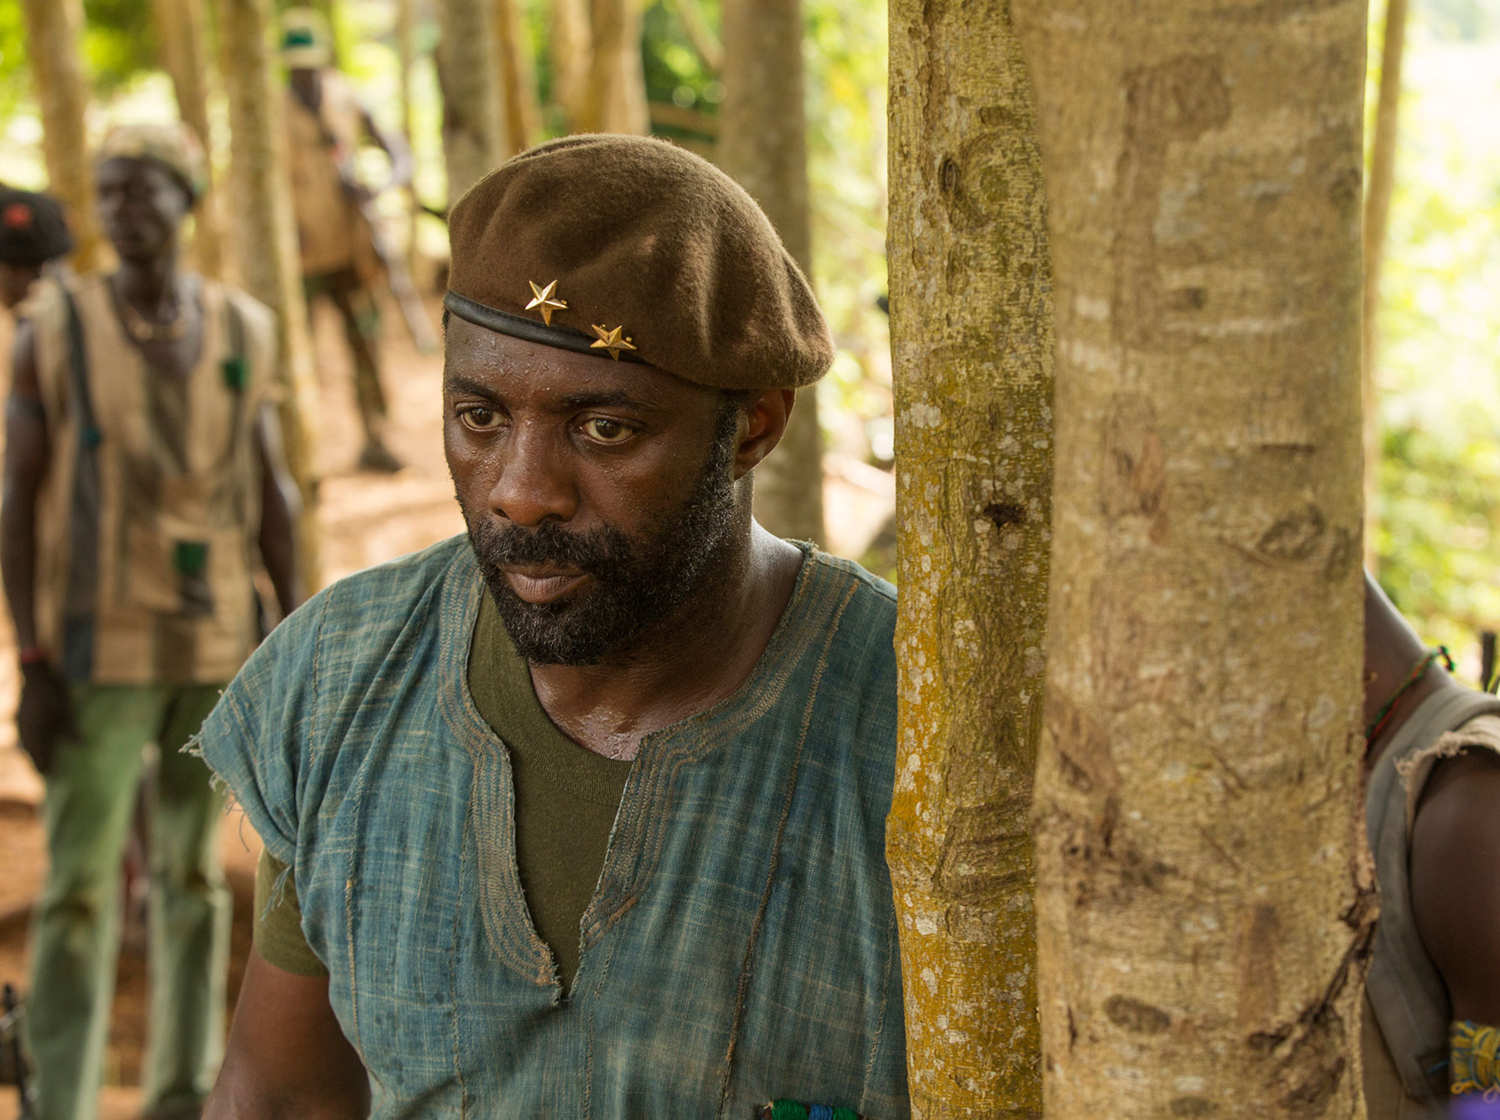 BEASTS OF NO NATION Reaches 3 Million North American Views in its First Week